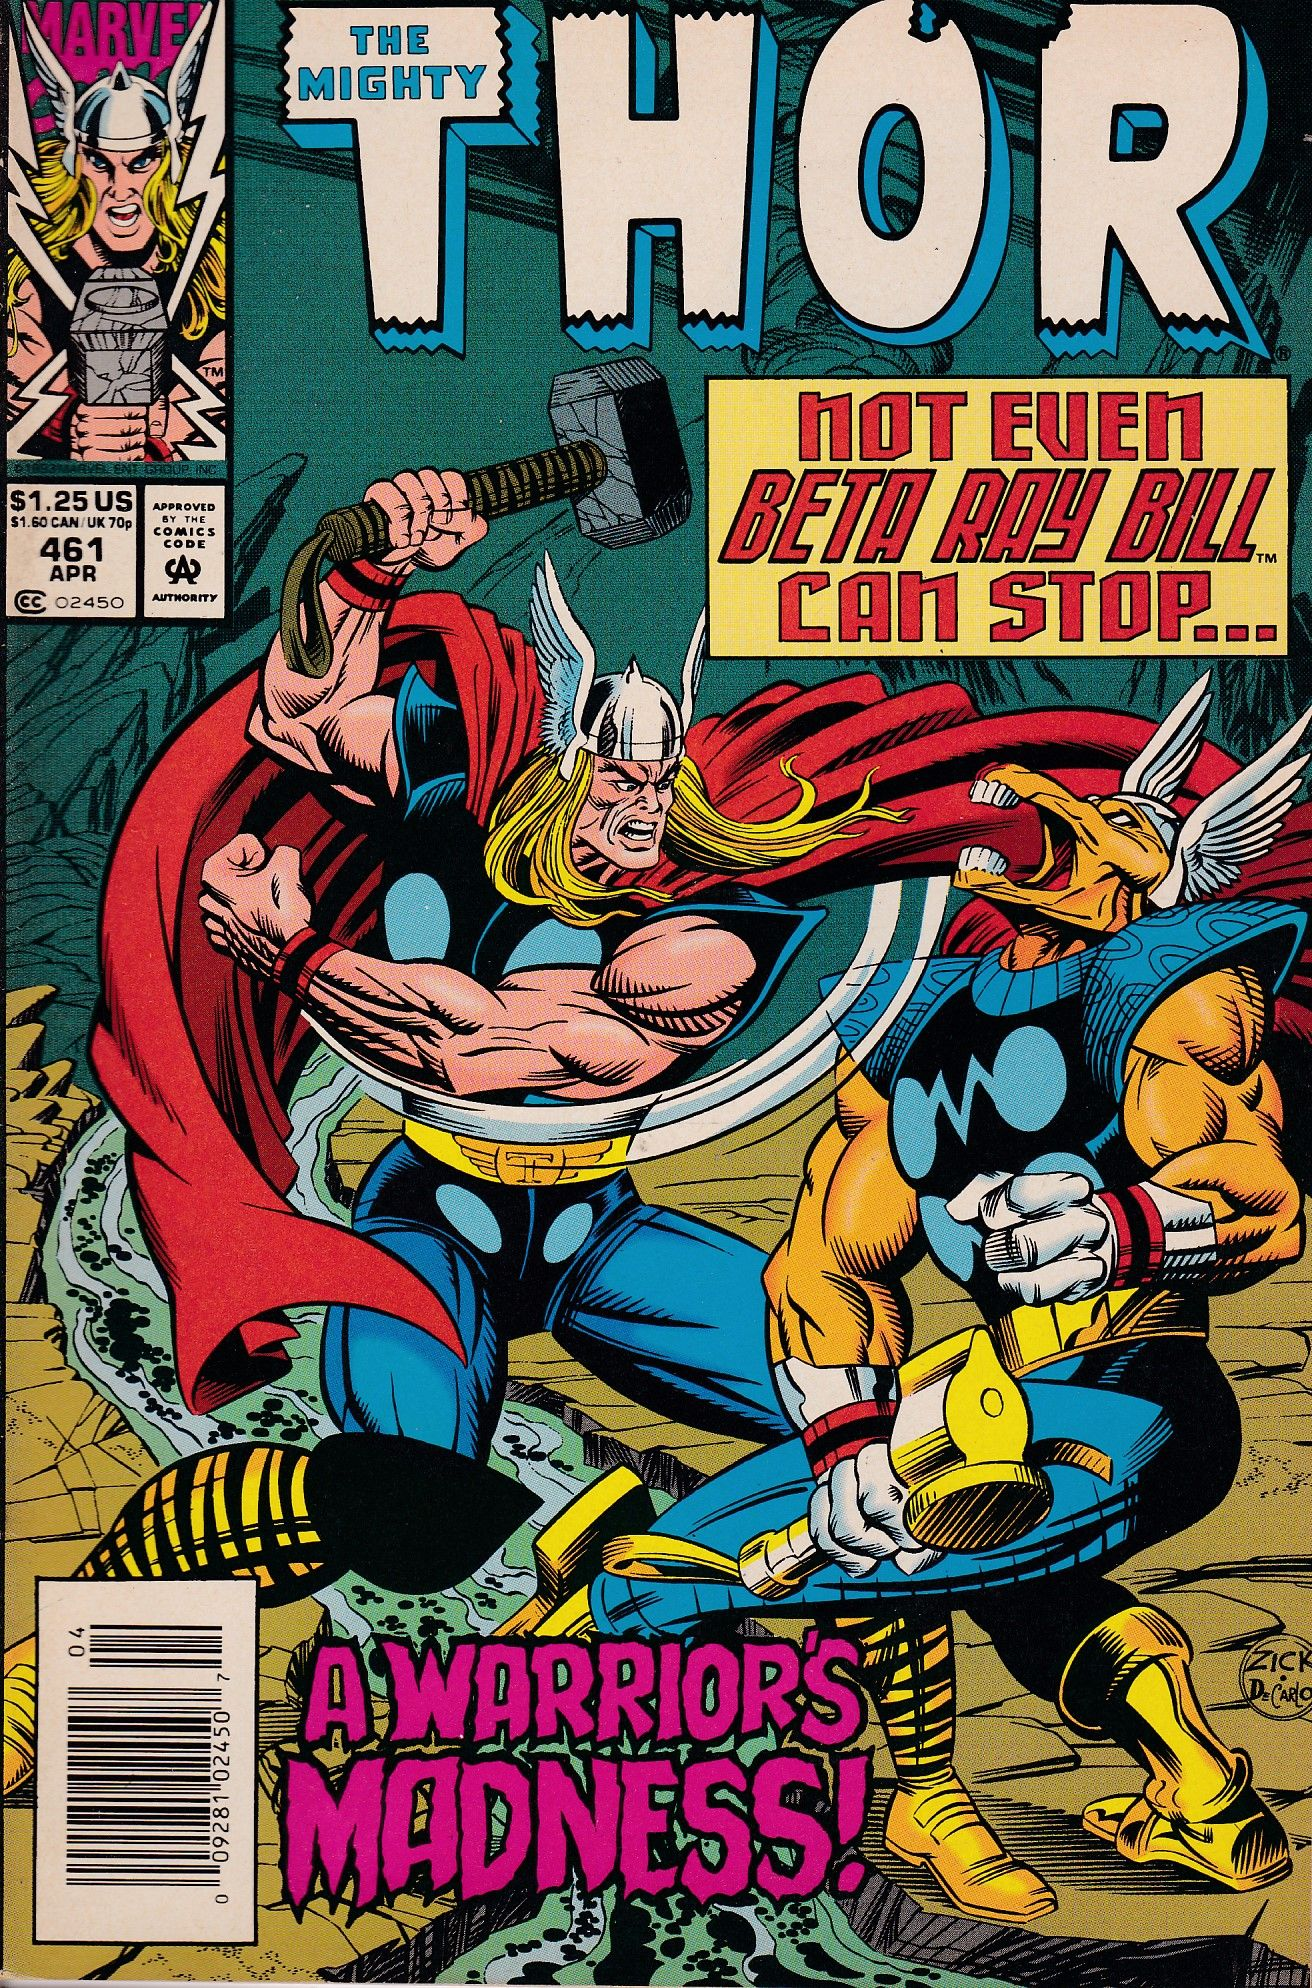 Pin by Rich Clabaugh on MARVEL COVERS | Vintage comic